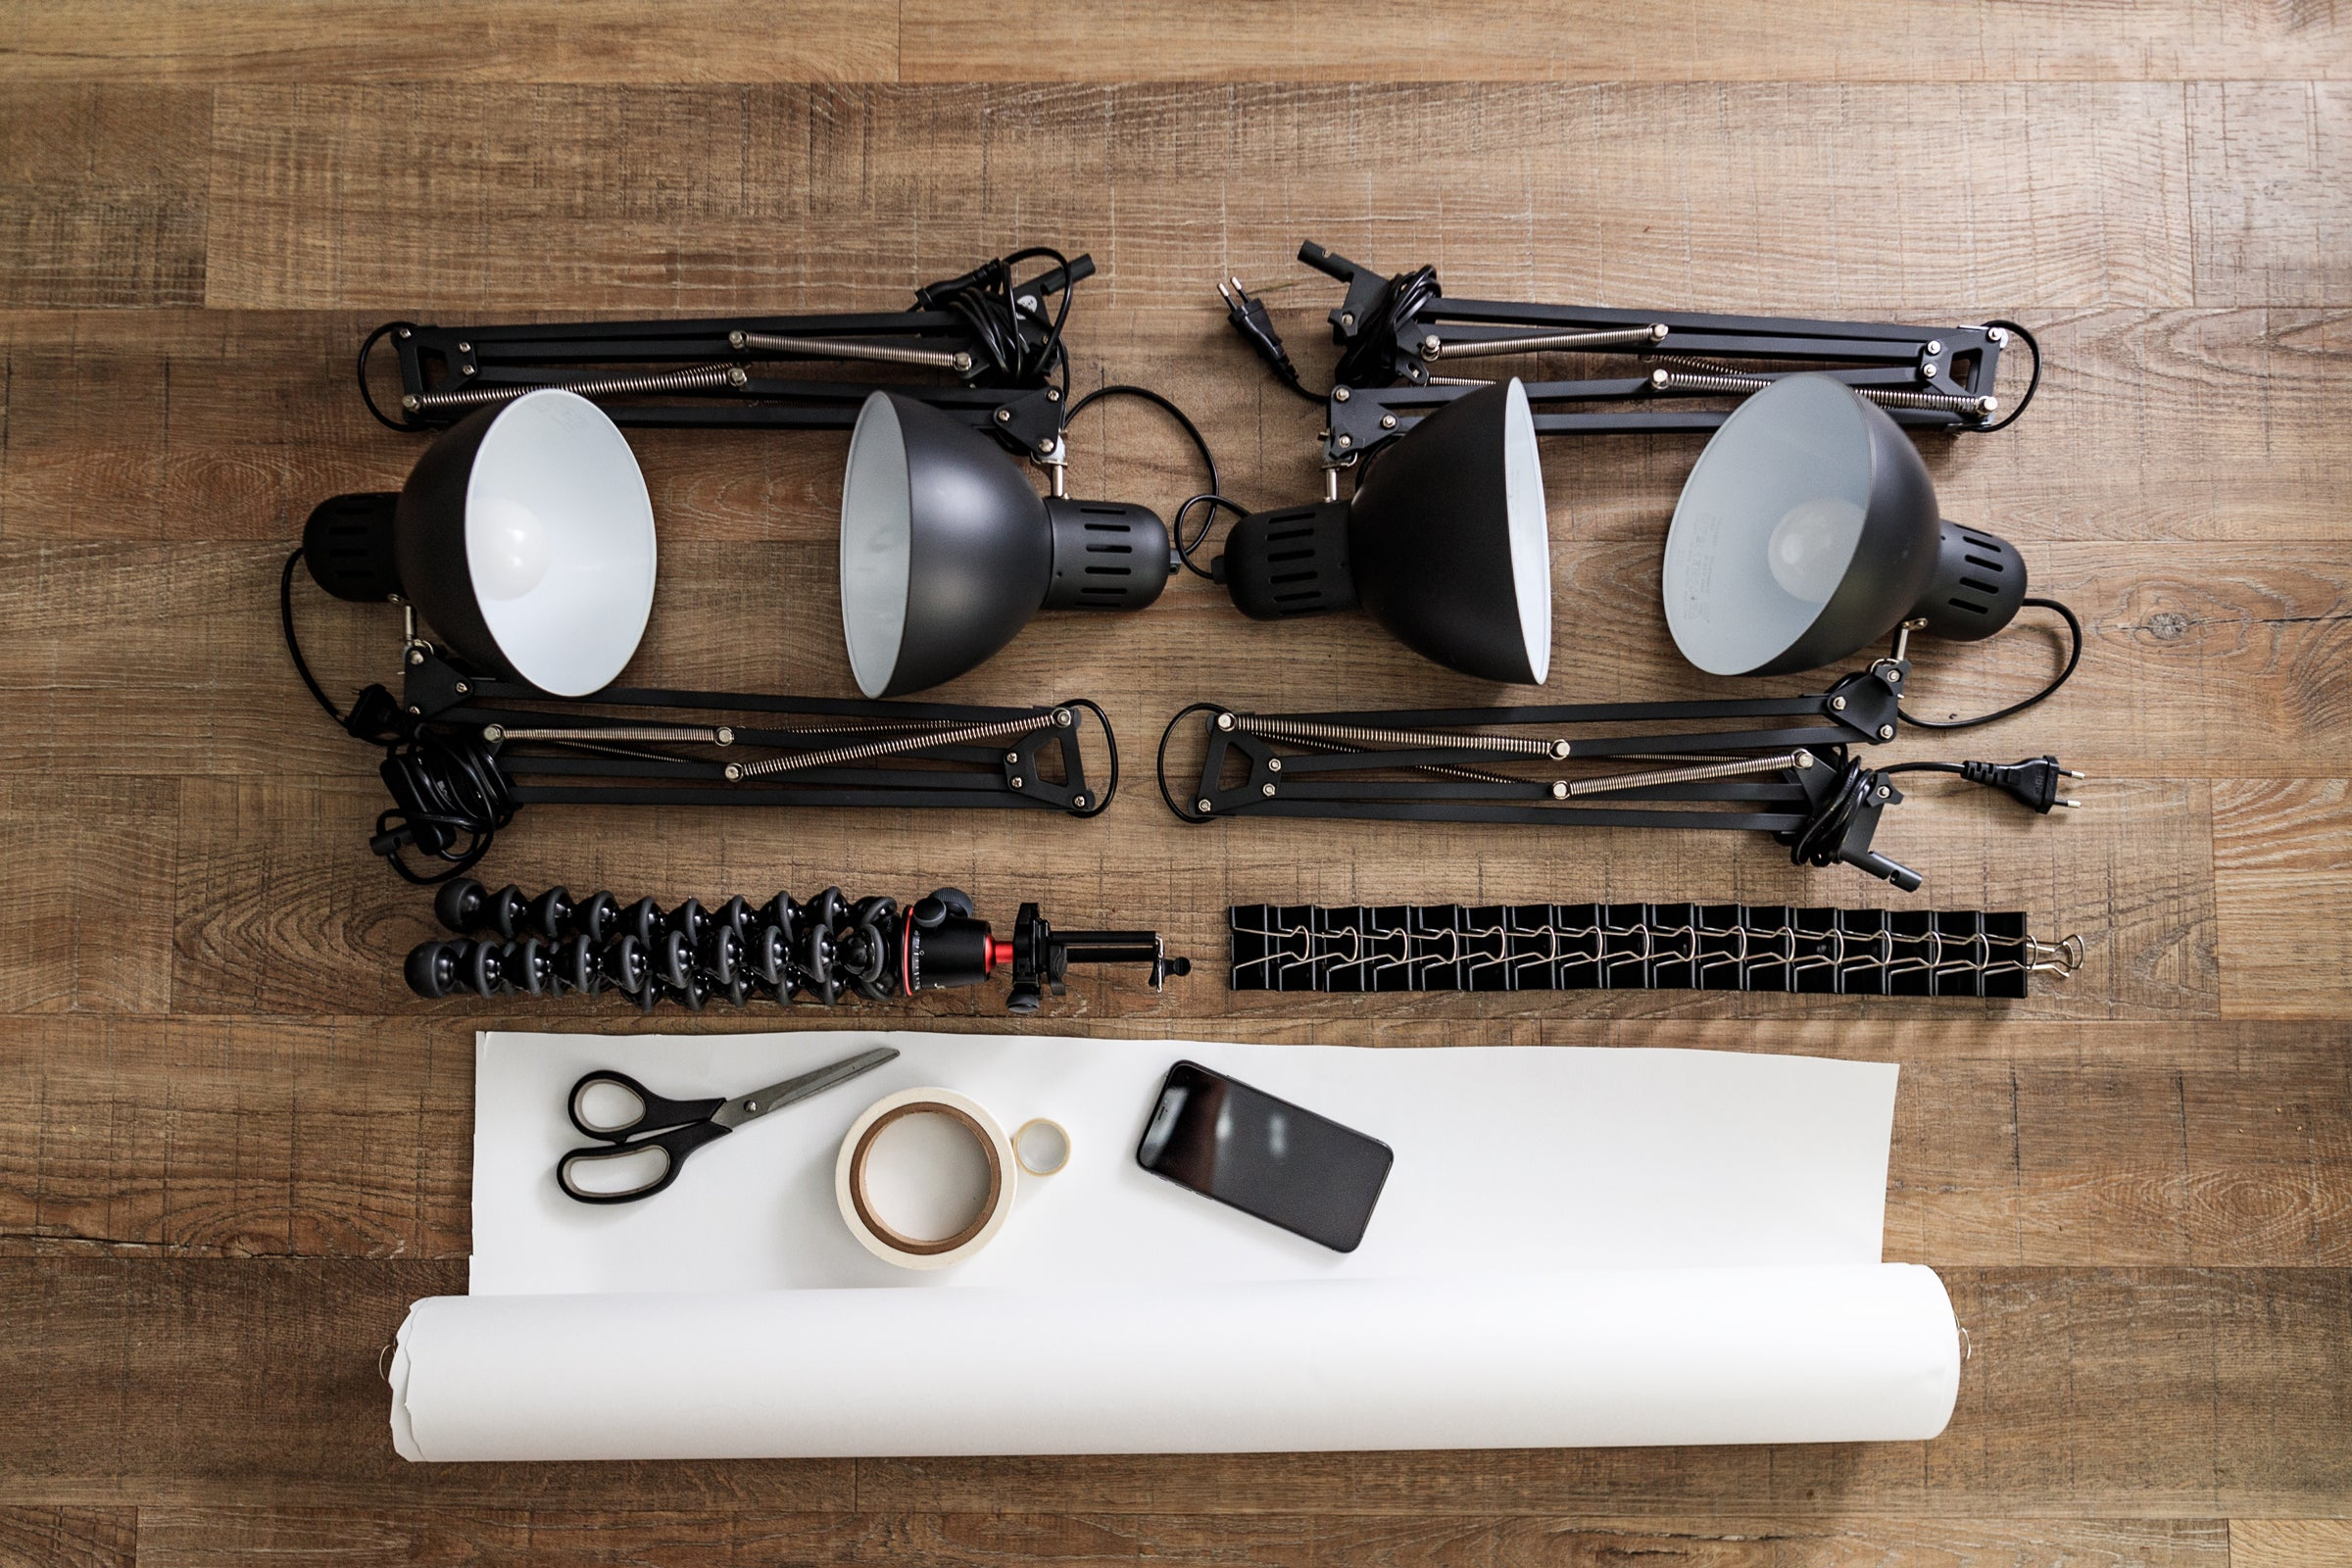 Equipment you will need to create spin product photography